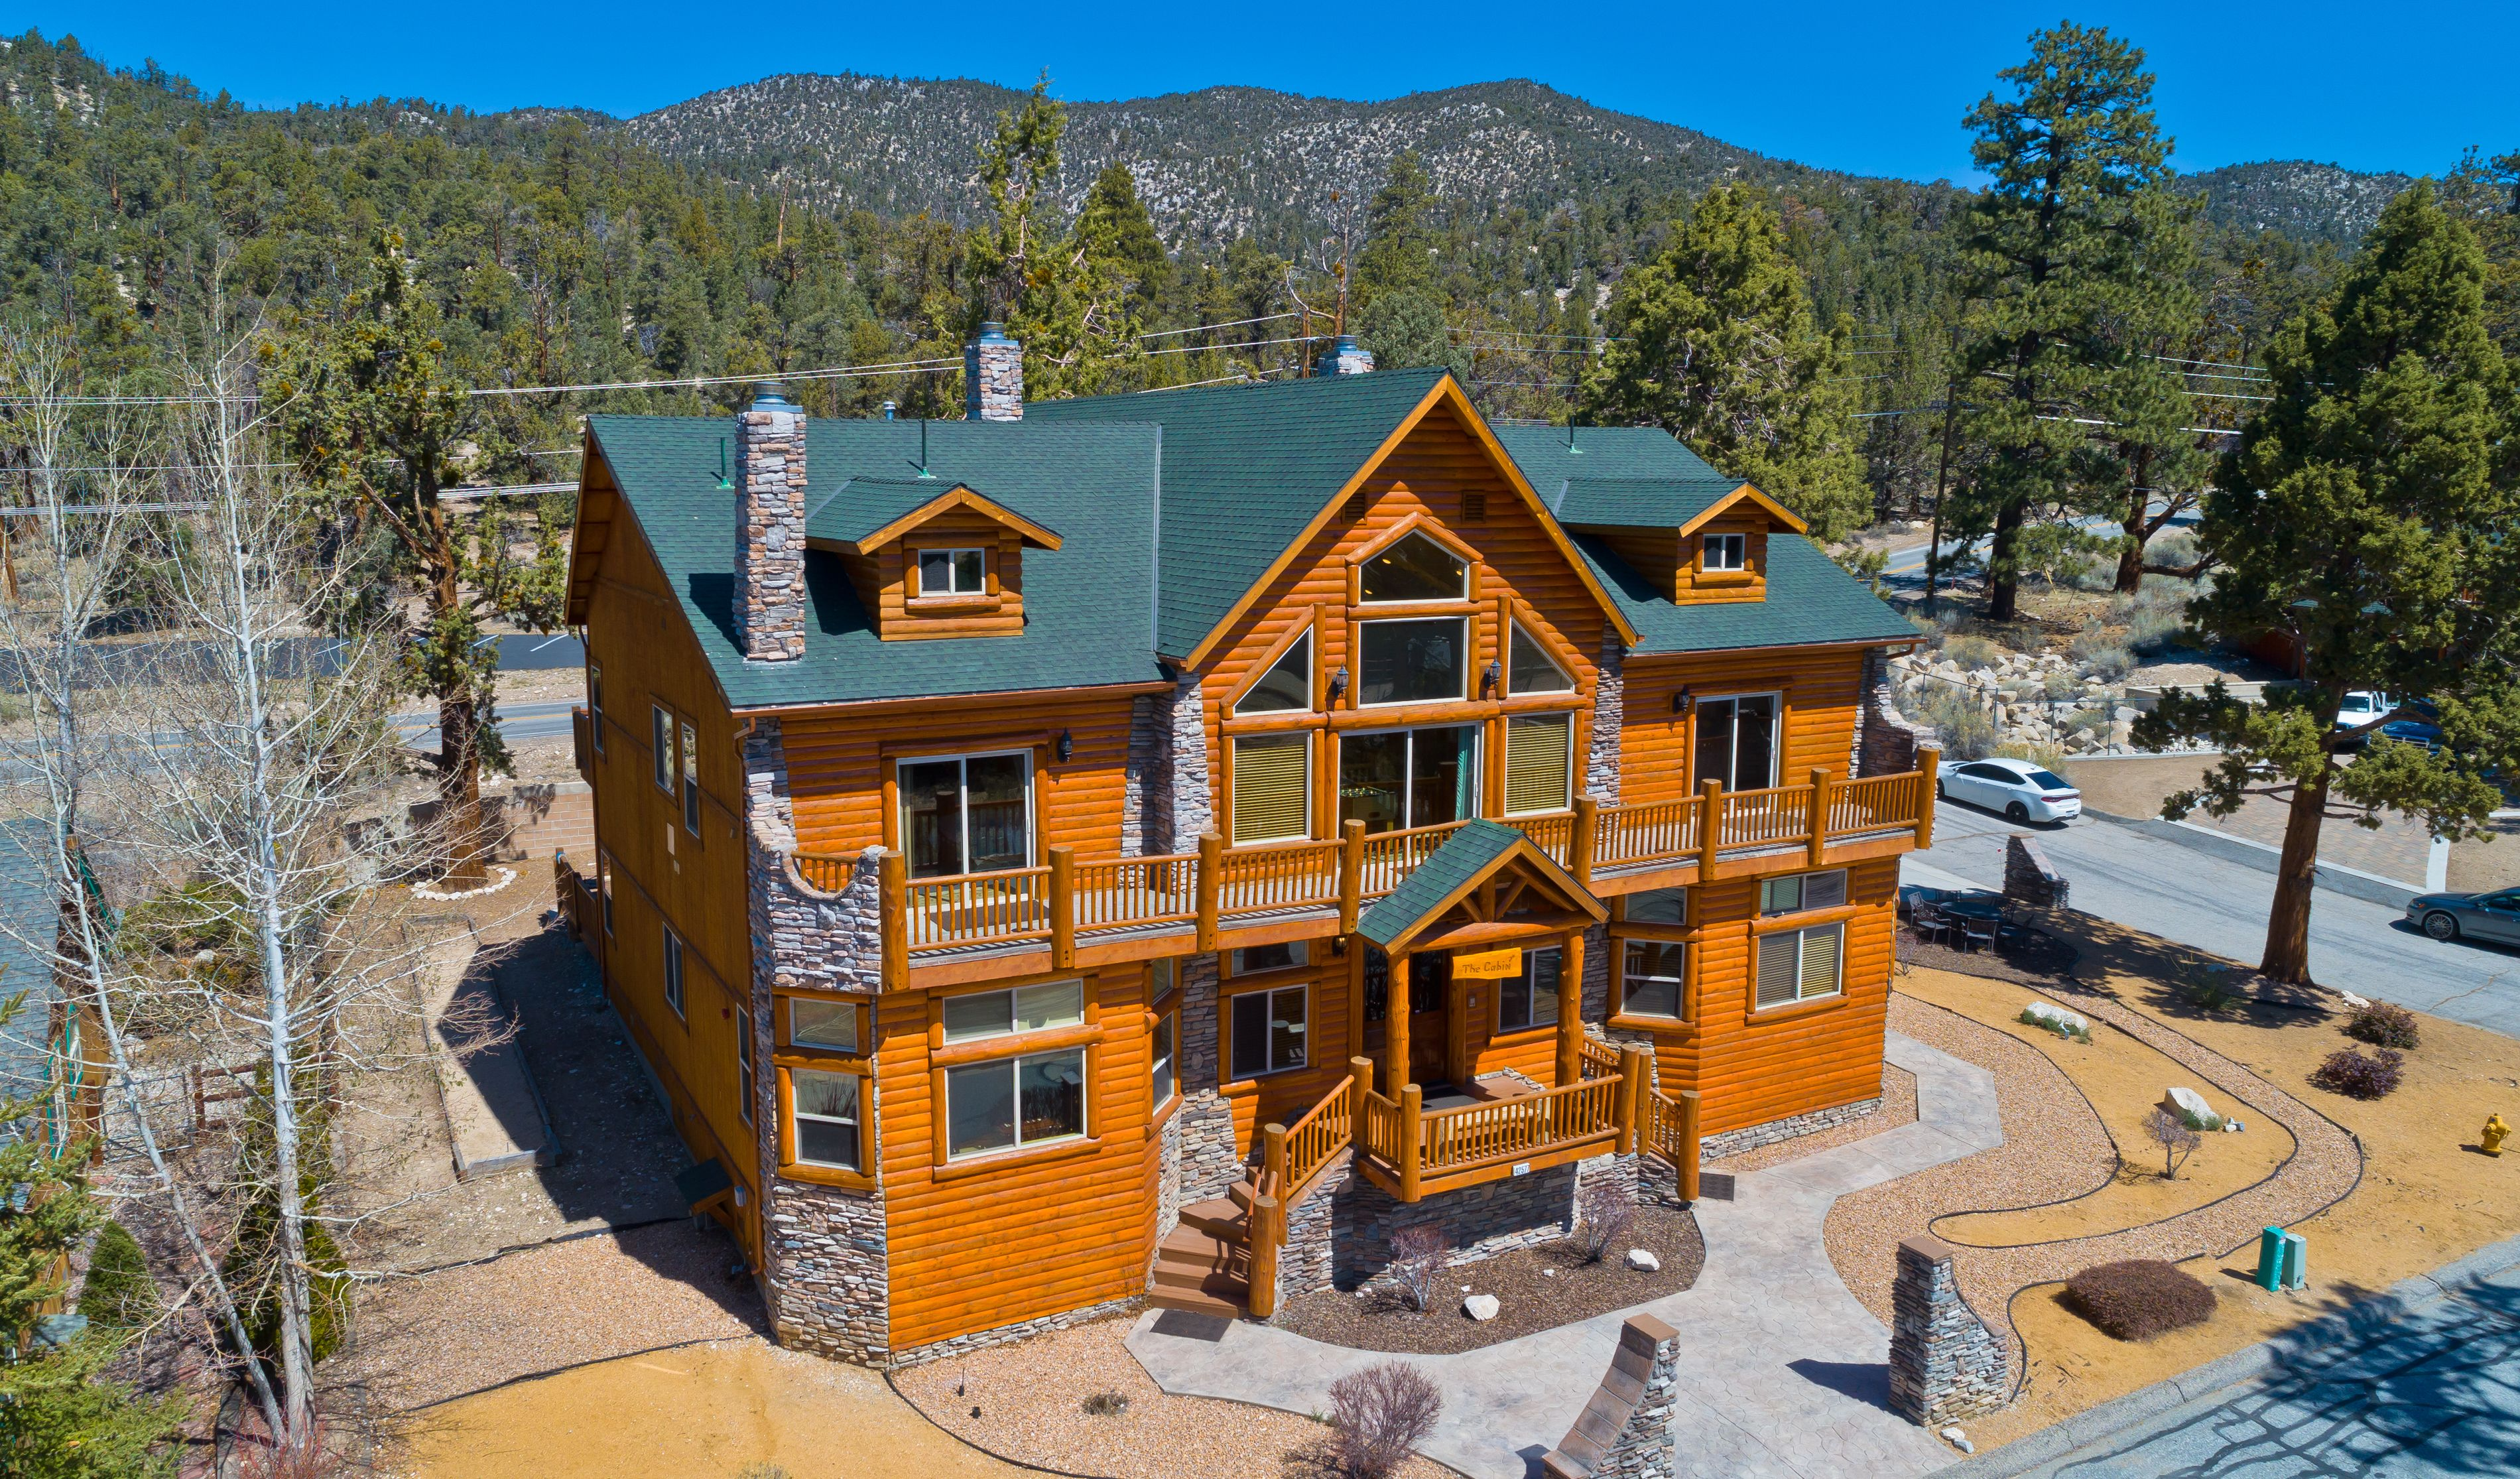 The Cabin A Perfect Vacation Home In Big Bear Lake For Your Luxurious Mountain Getaway Vacation Cabin Rentals Cabin Bear Cabin